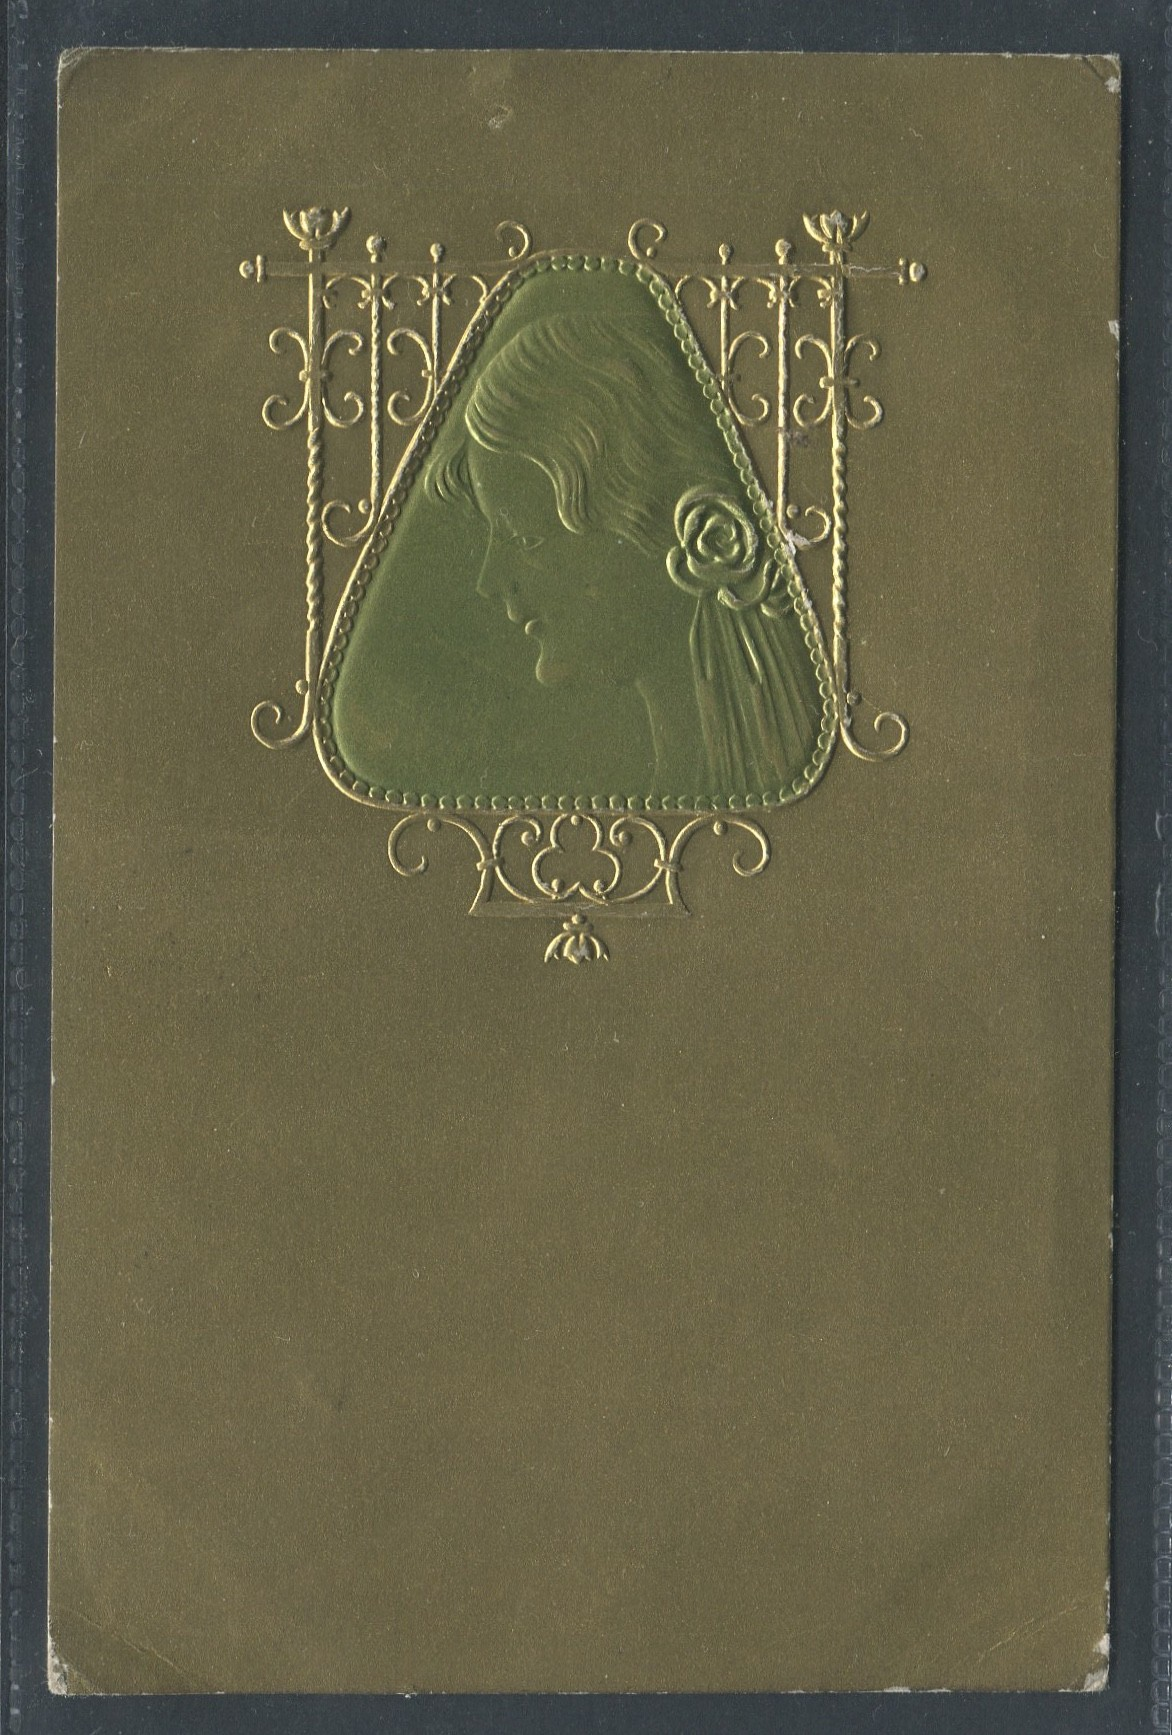 Lot 34 - ART NOUVEAU STYLE EMBOSSED POSTCARD